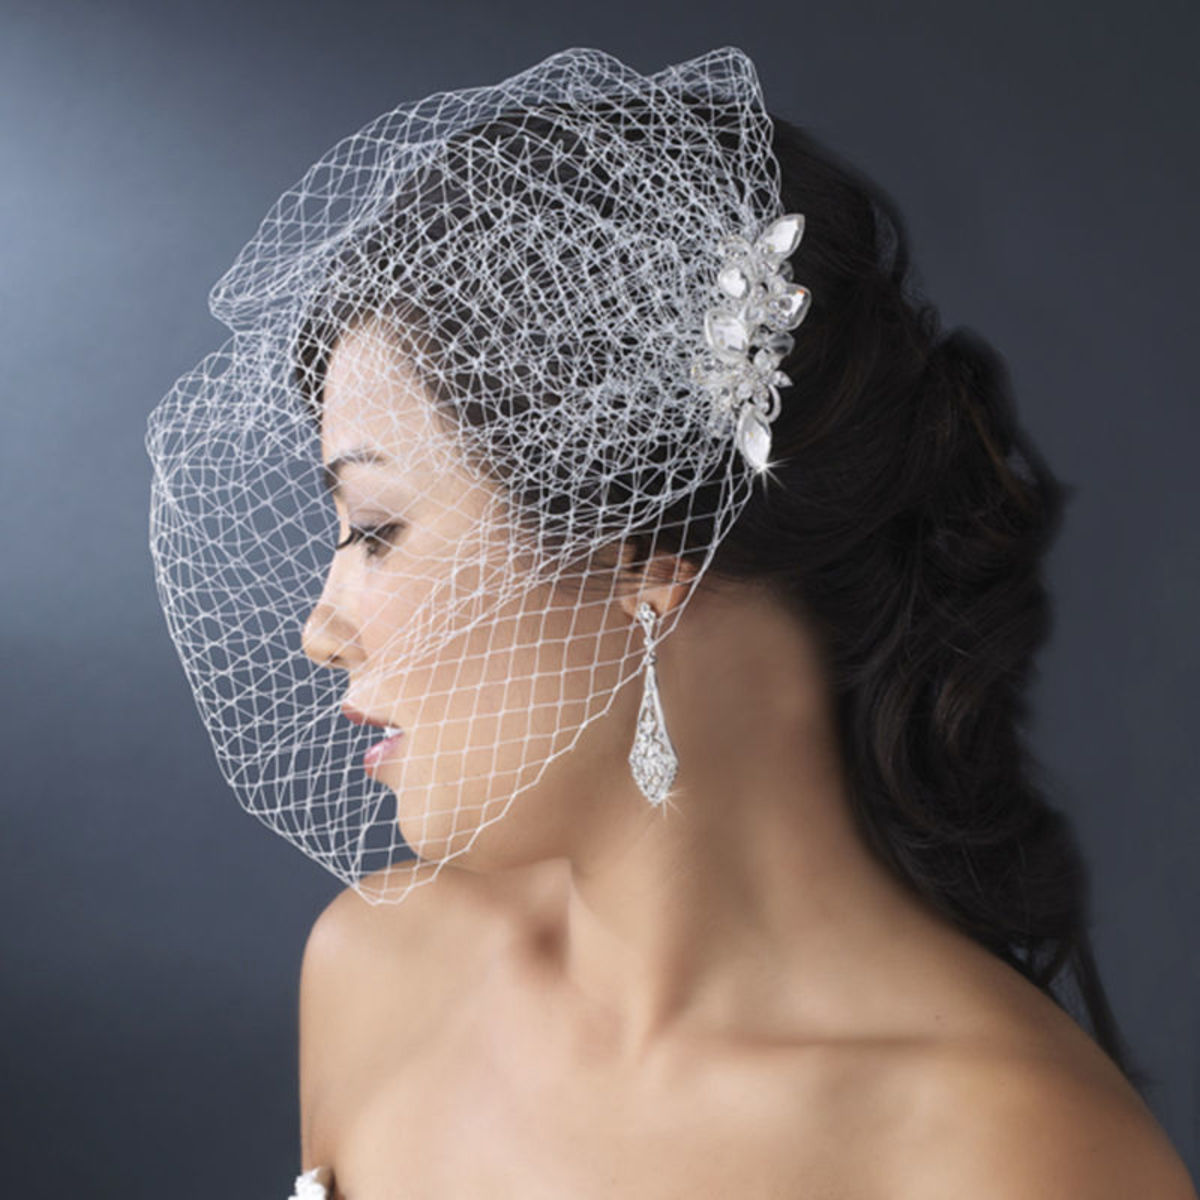 how-to-make-your-own-hair-fascinator-with-bird-cage-veil-for-your-wedding